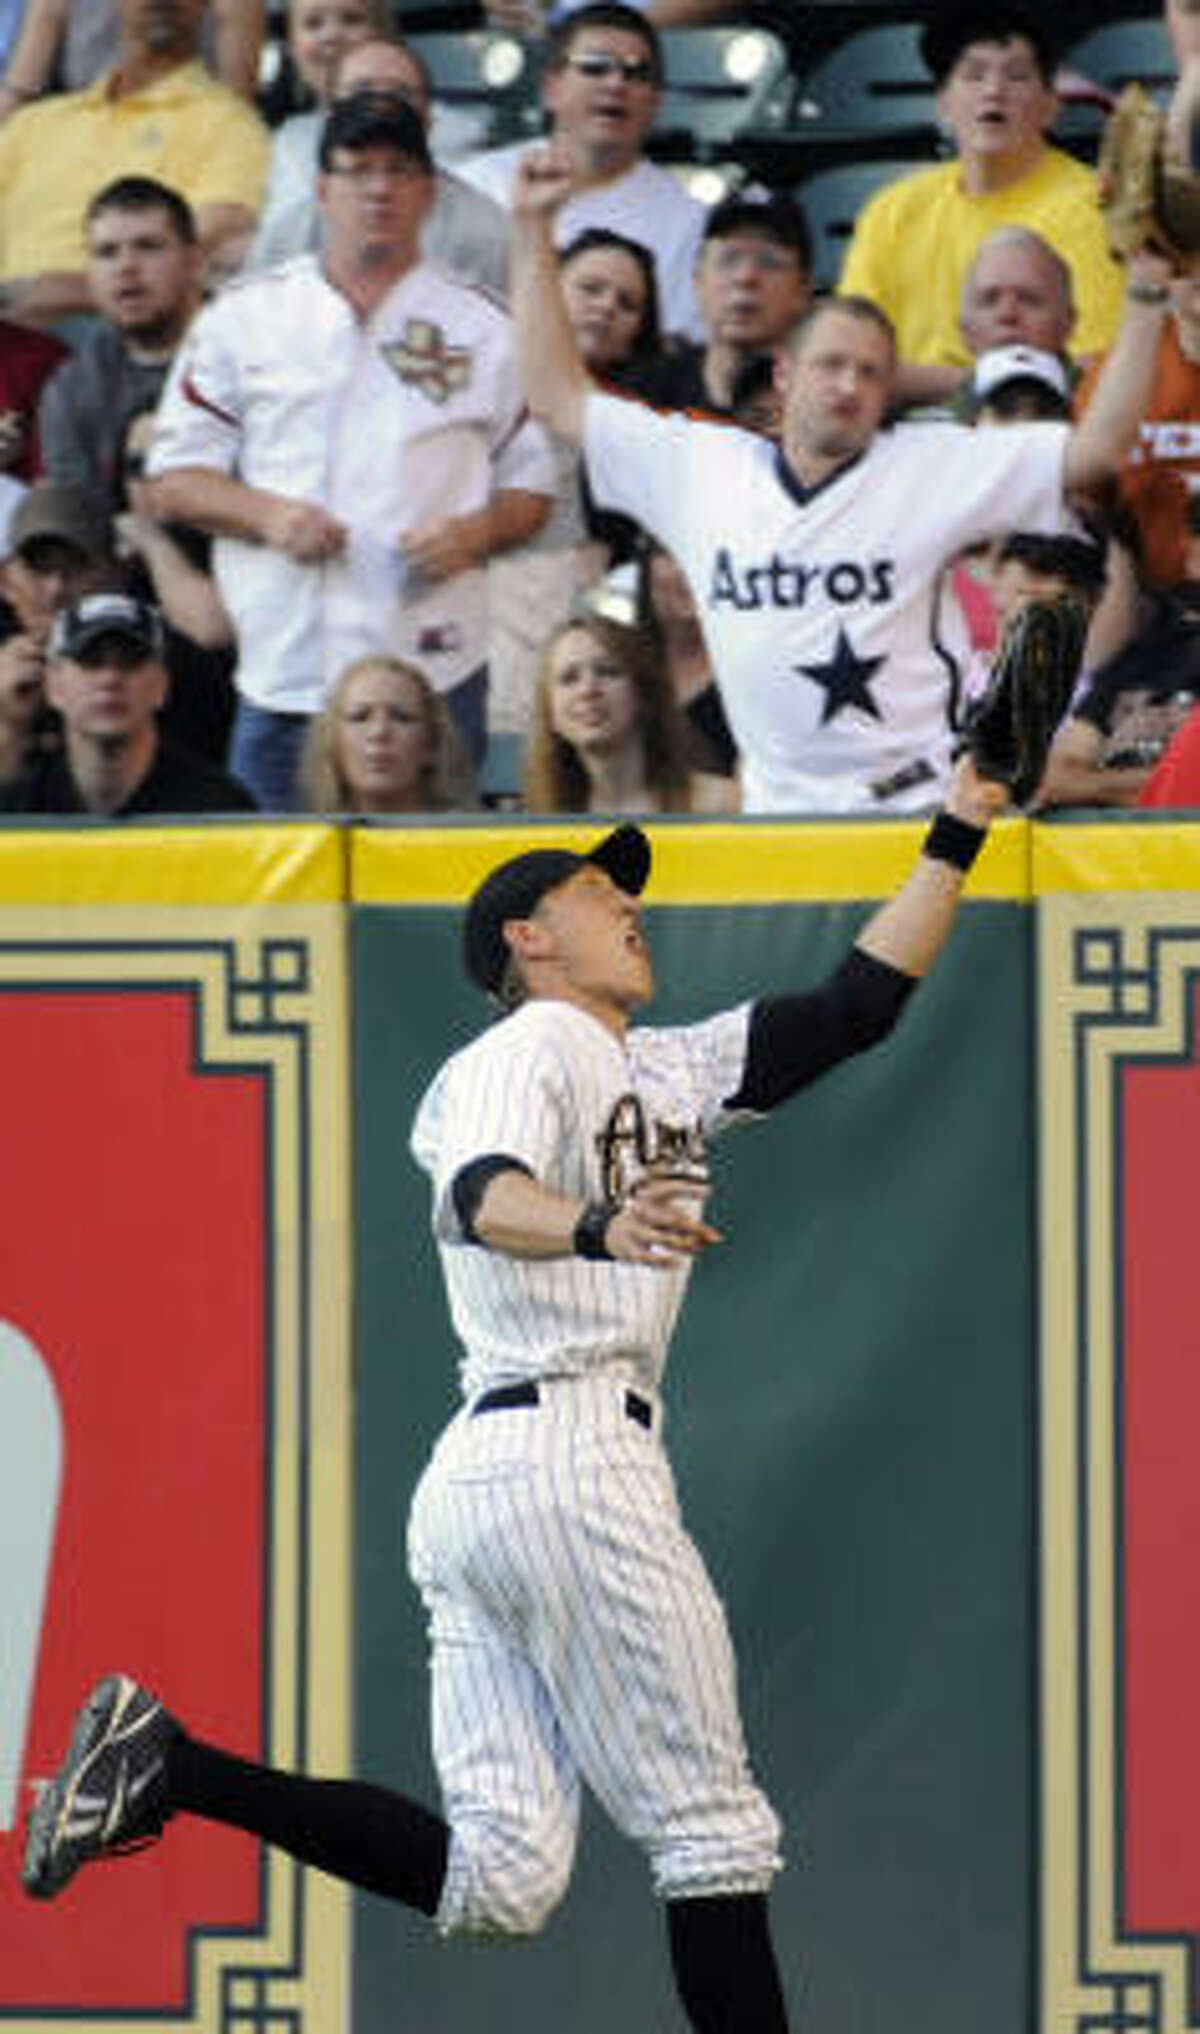 Houston Astros right fielder Hunter Pence makes the catch for the out on Milwaukee Brewers' J.J. Hardy in the first inning.